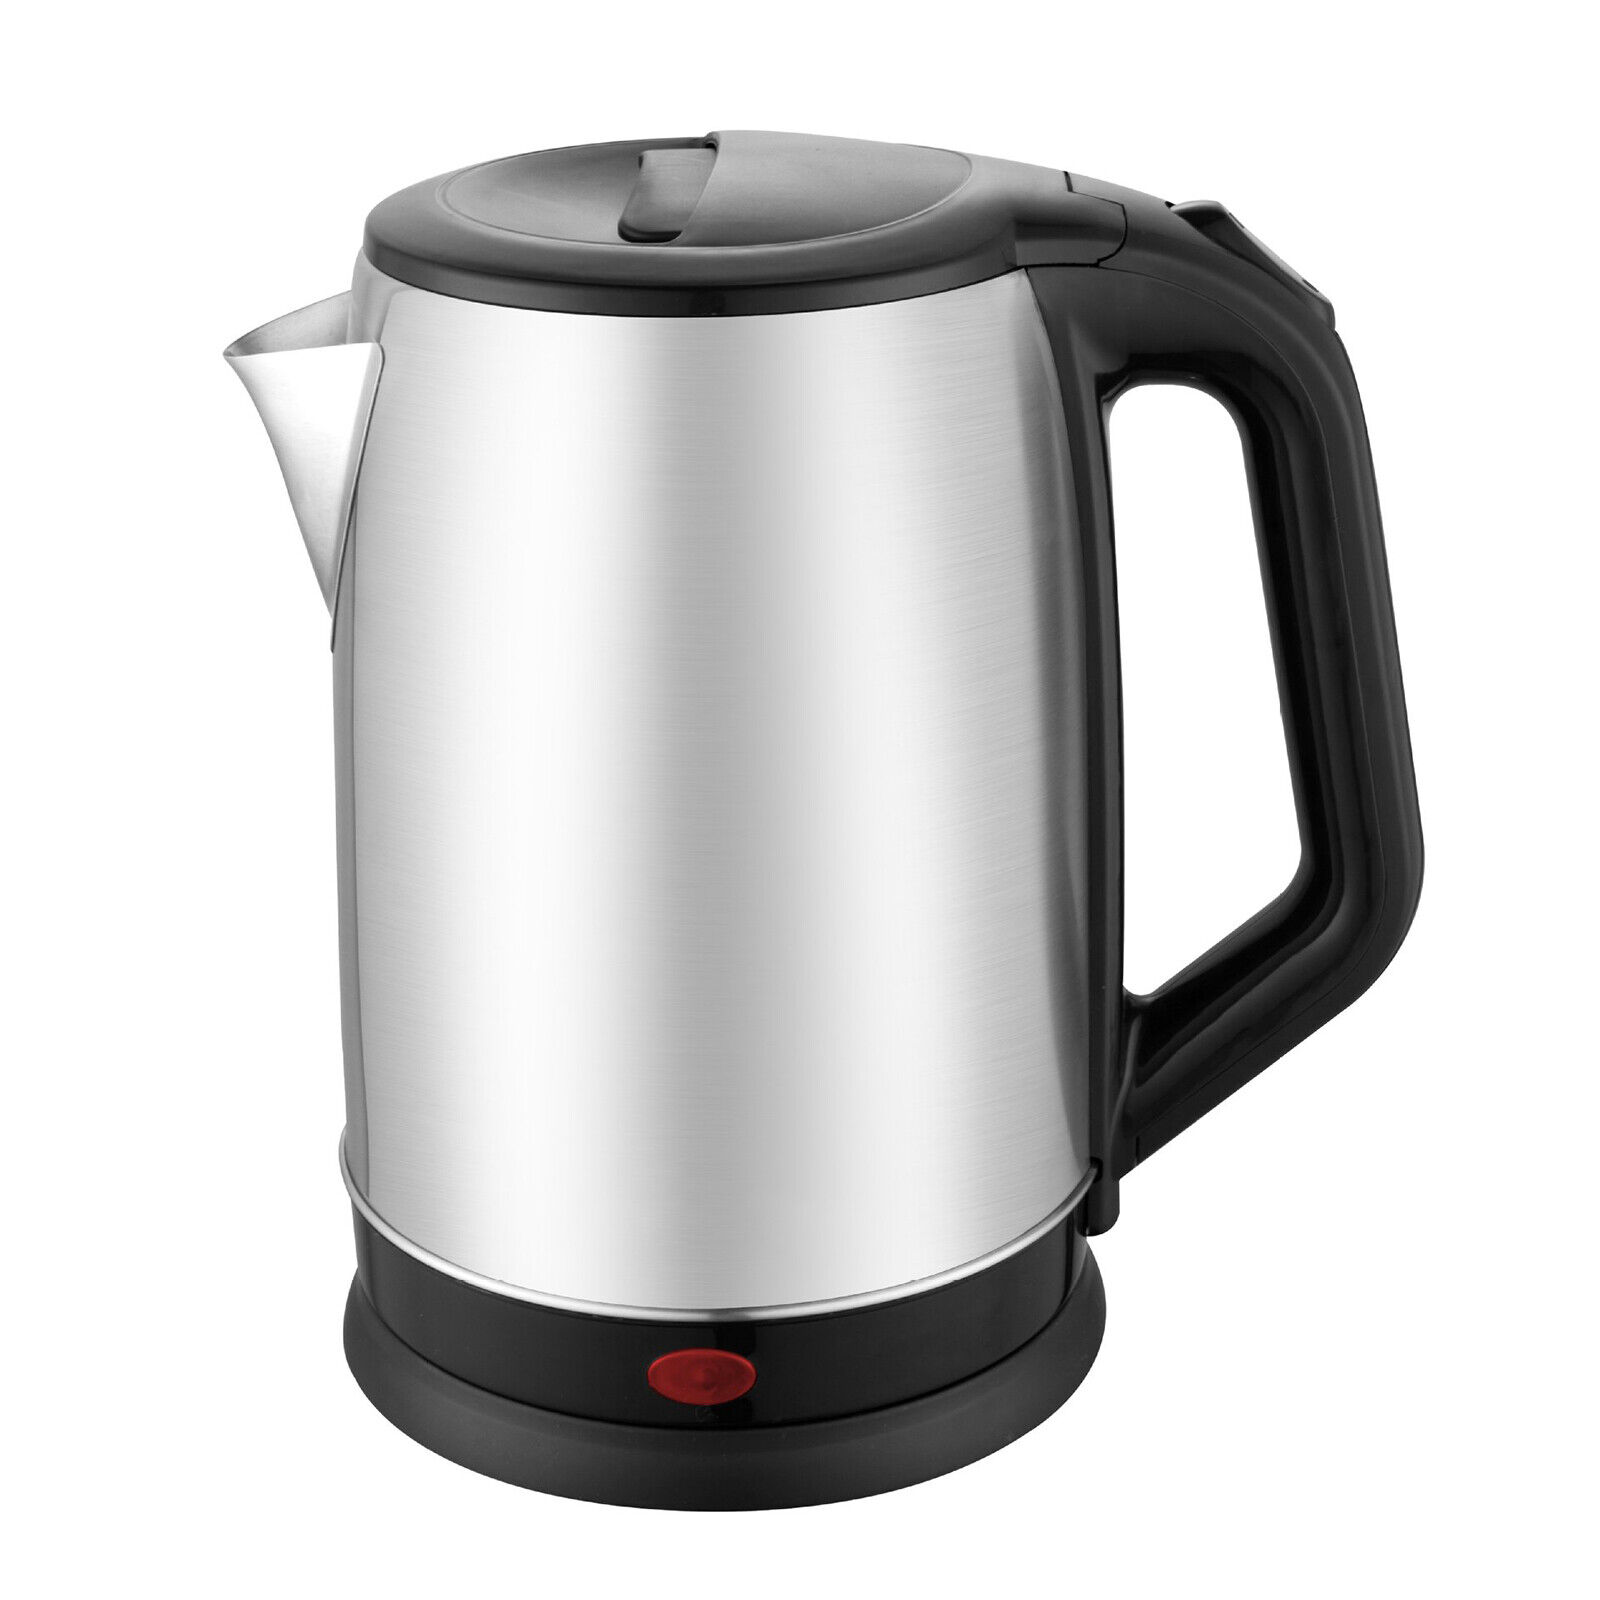 2L Electric Tea Kettle Water Boiler Fast Boiling Stainless Steel 3-Layer Protect